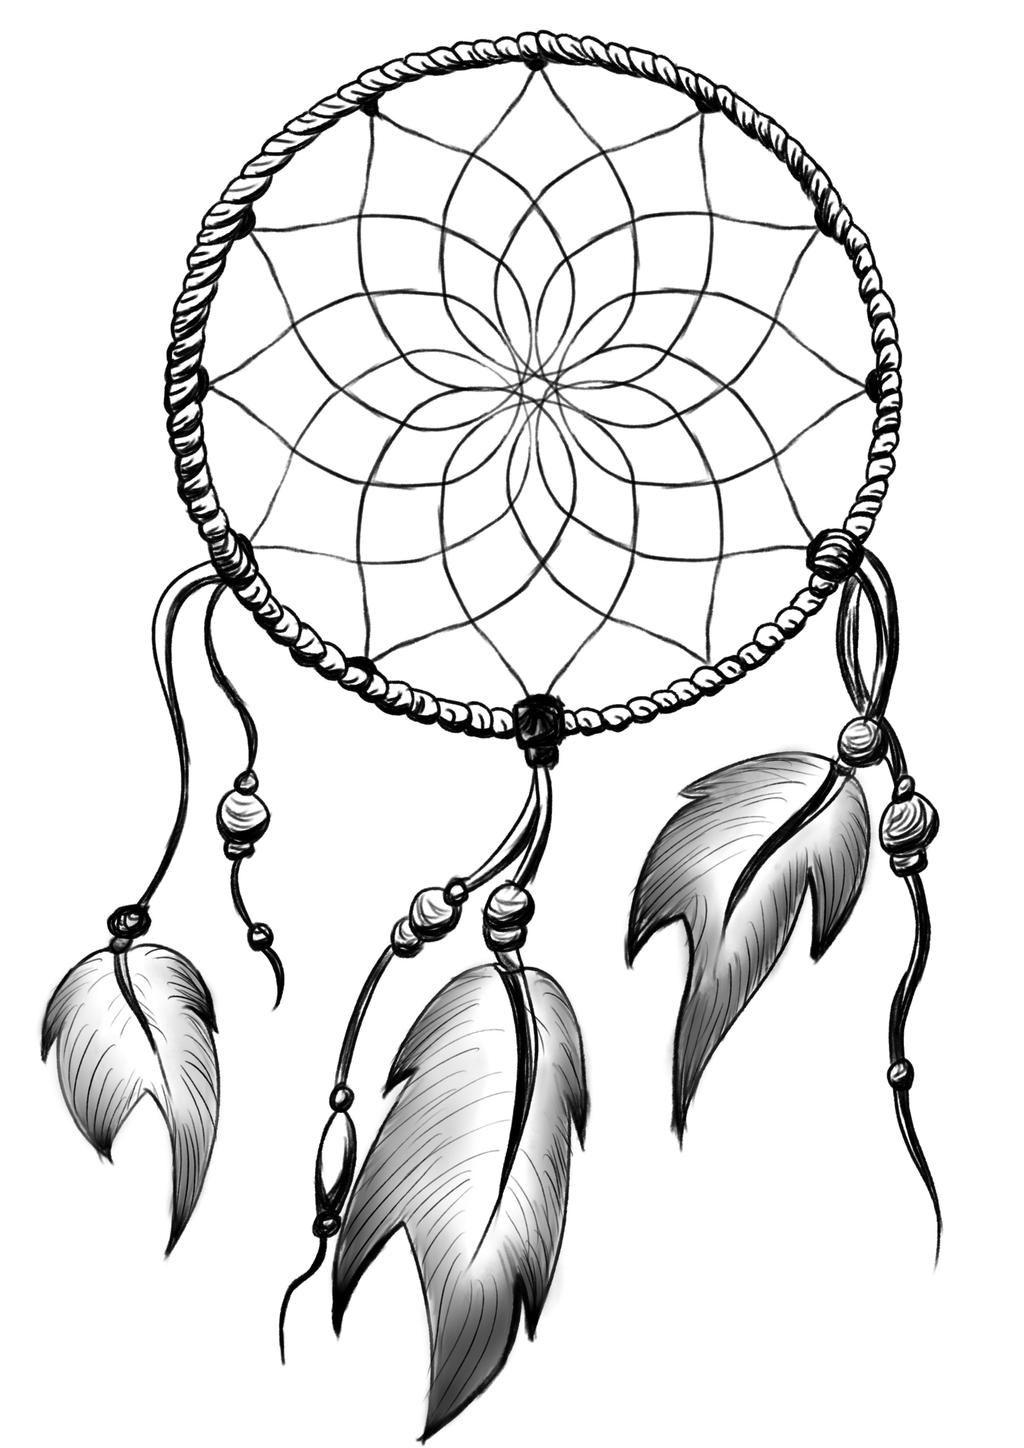 Dream catcher by nekosenpai112 on deviantart for Dream catcher tattoo template